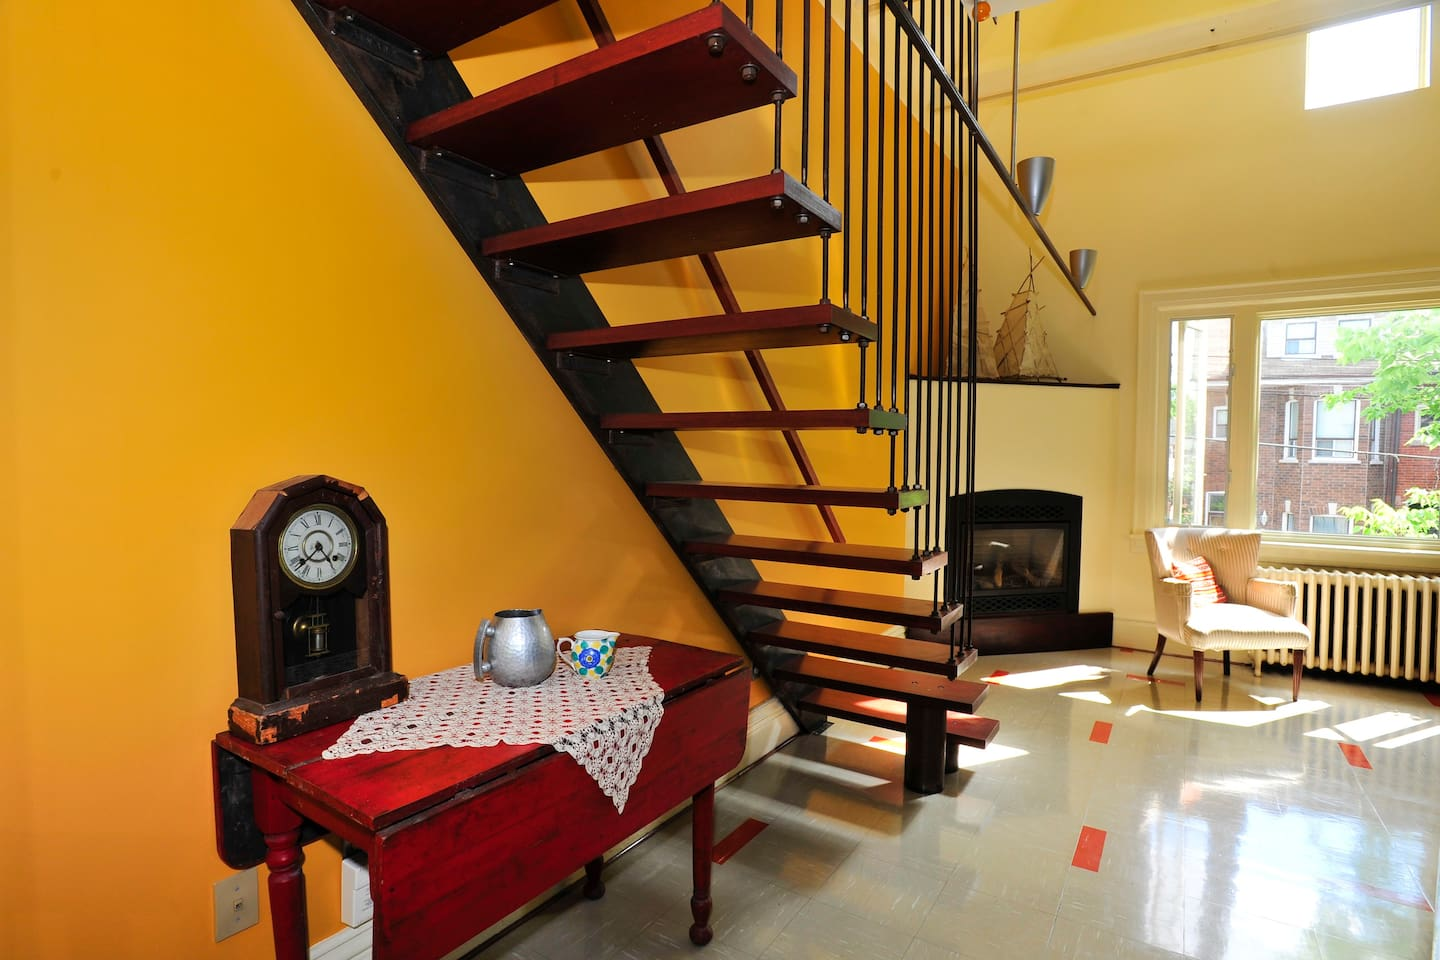 The floating stair that leads to the sun infused room.